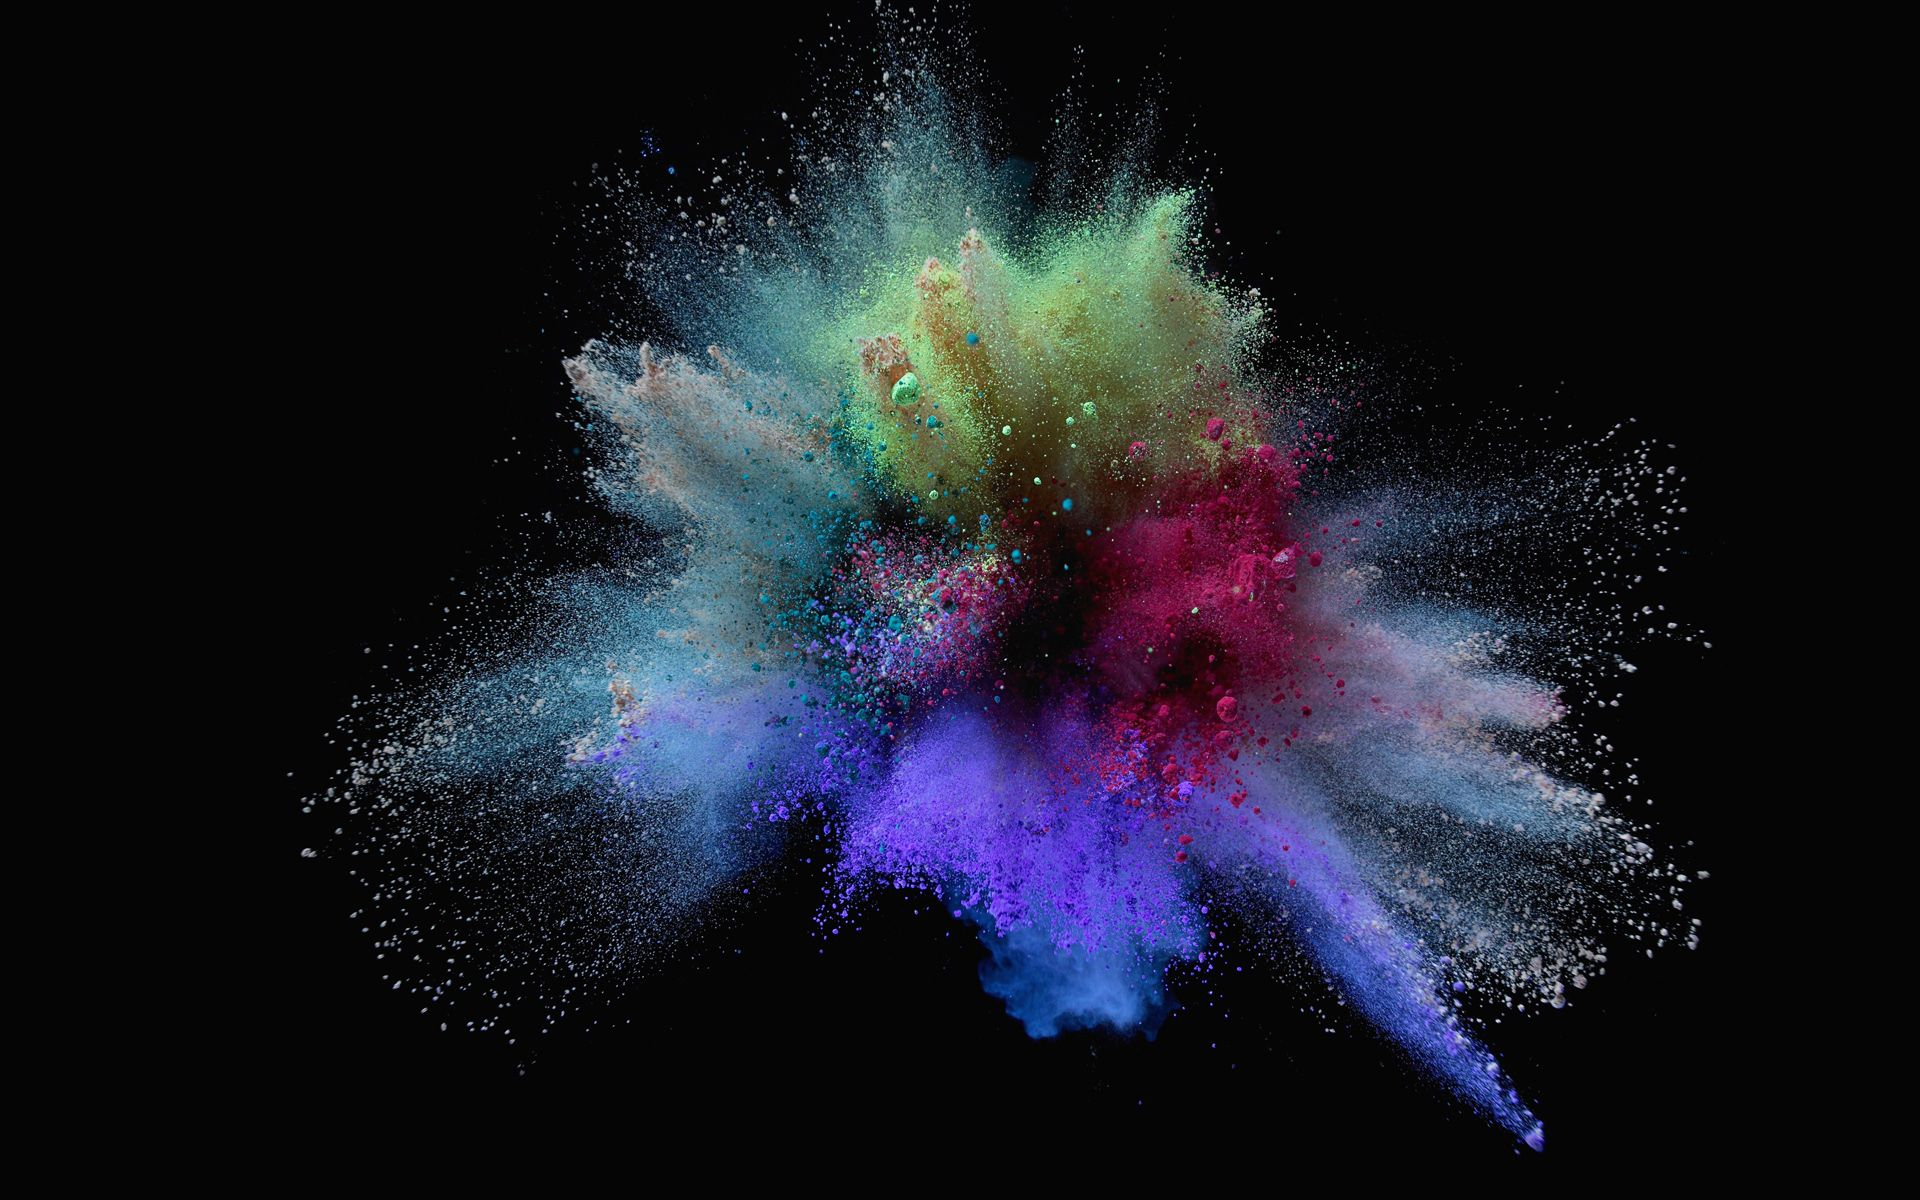 Hd wallpaper with black background - Explosion Of Colorful Sand On Black Background Hd Wallpaper 1920x1200